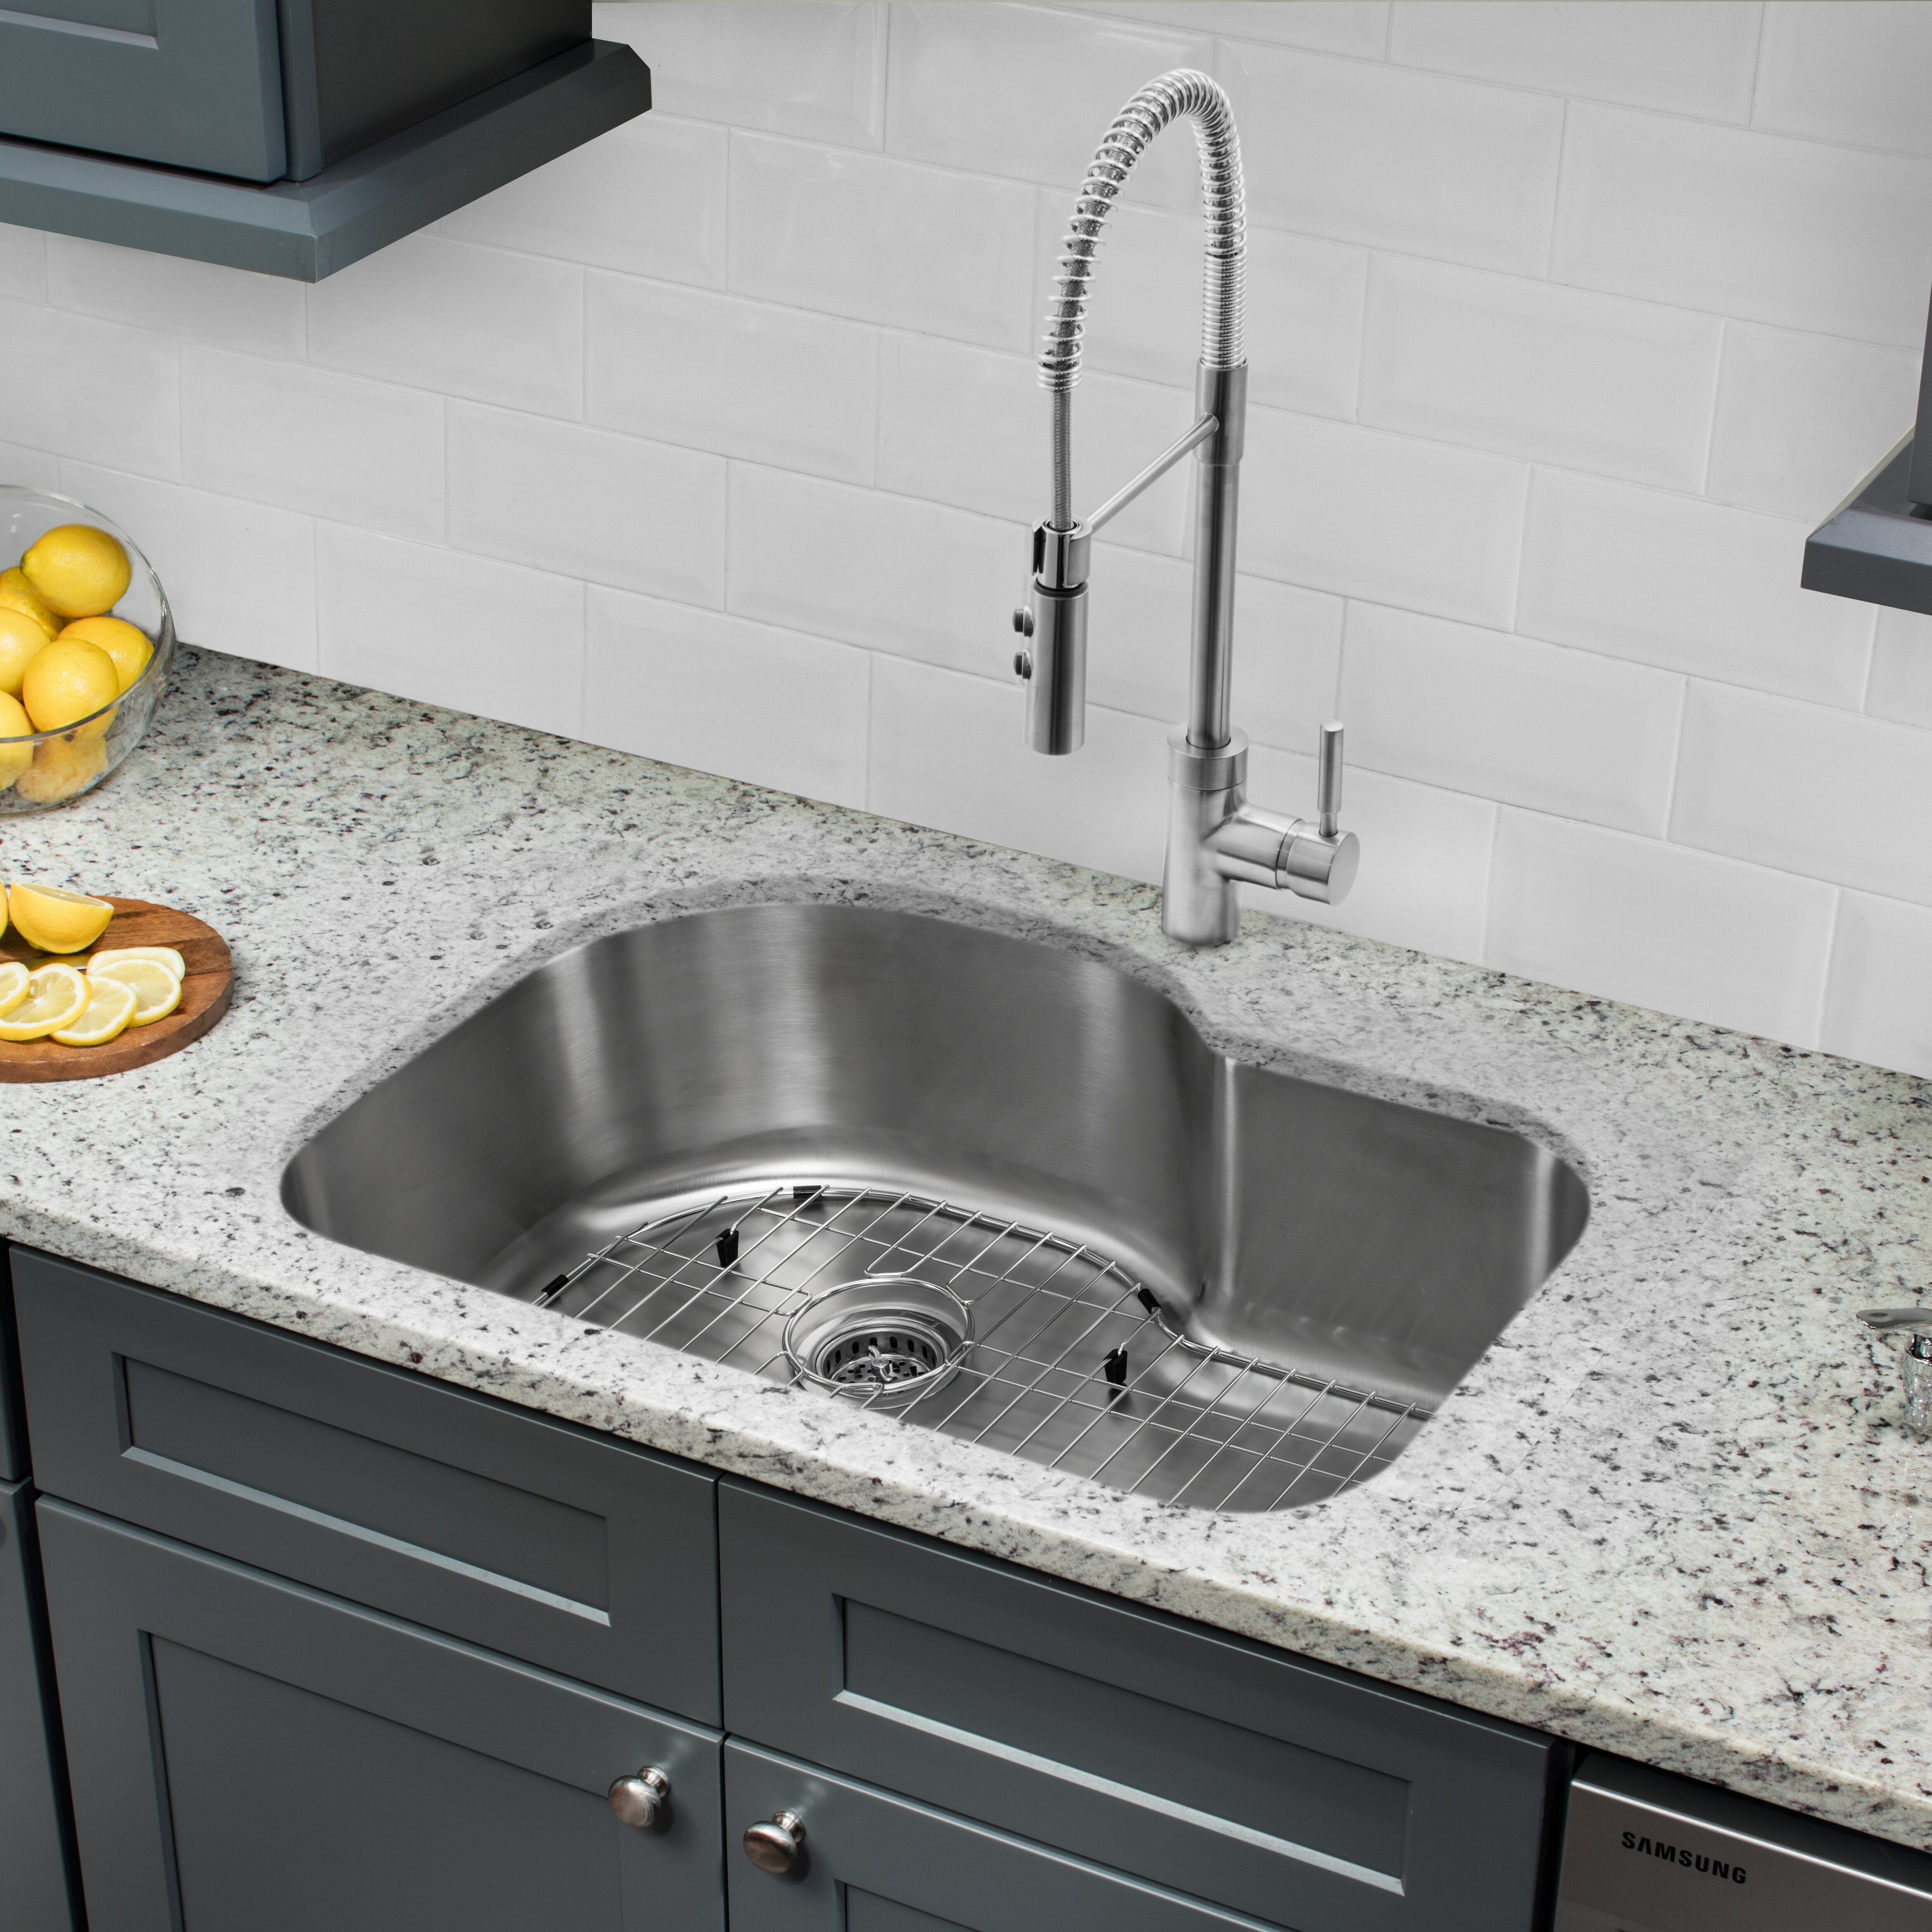 sprayer sink with sinks hole idea for cheap ridge your inexpensive best faucets bathroom faucet costco and under kitchen gooseneck water